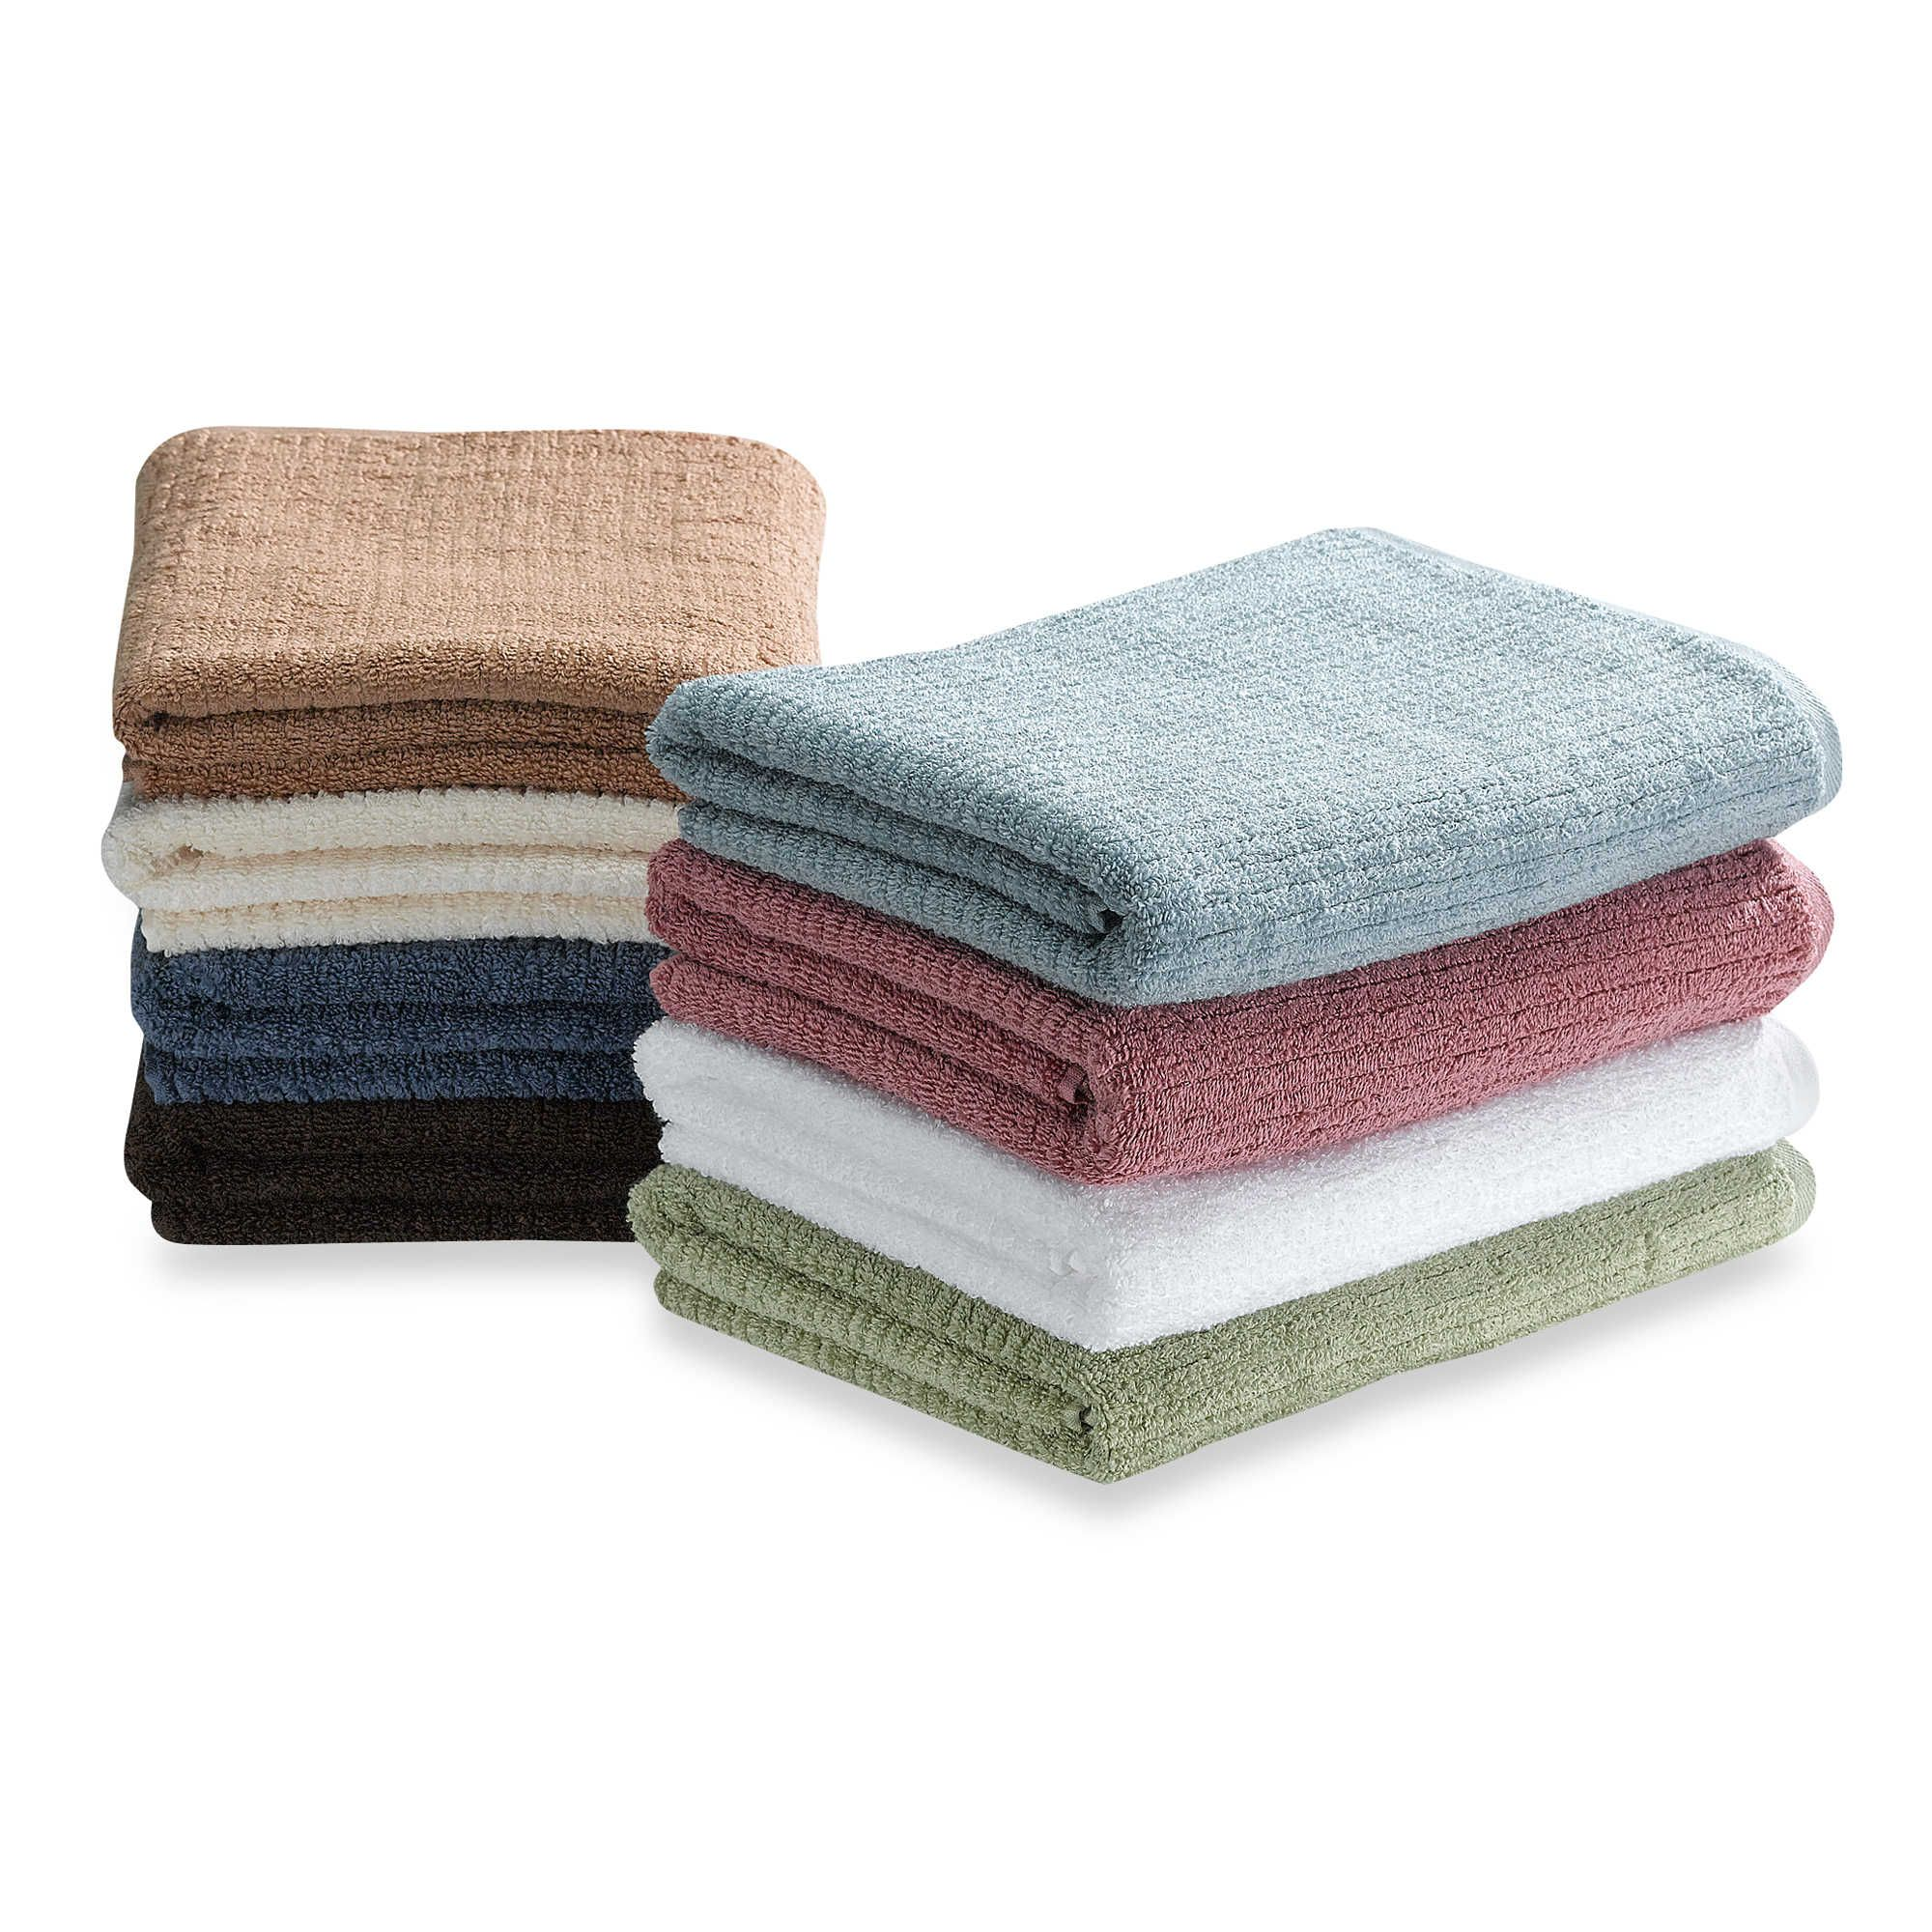 Dri Soft 100 Cotton Bath Towels Soft Bath Towels Bath Towels